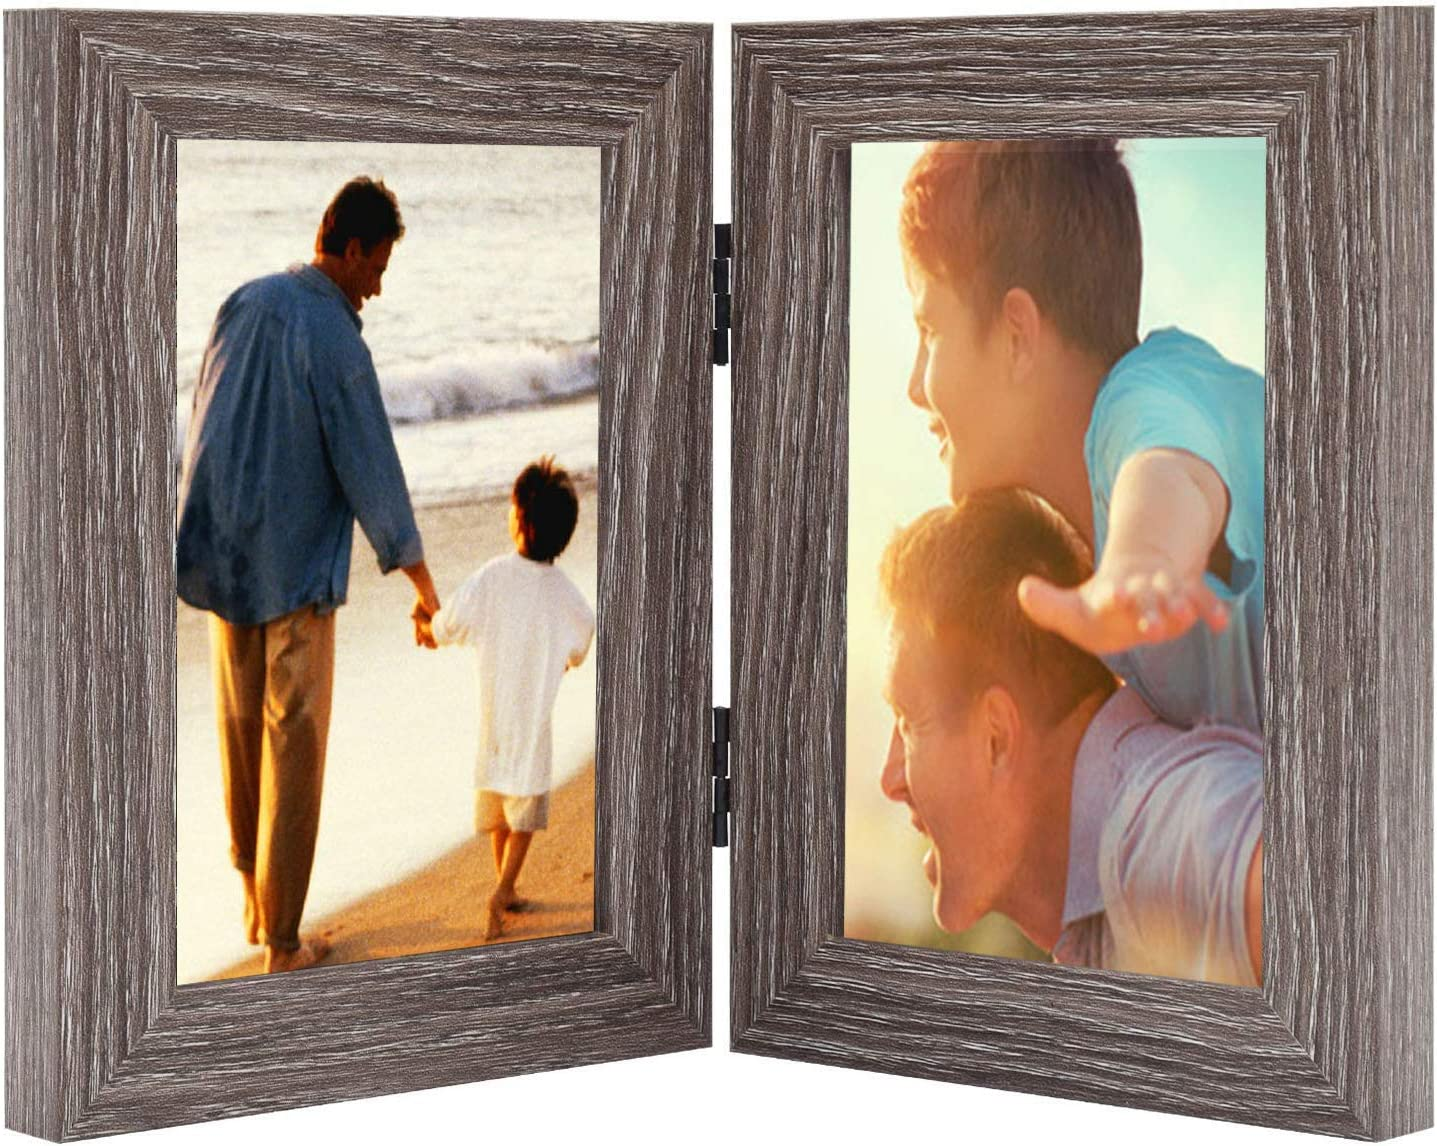 Awefrank 4x6 Inch Double Picture Frame with Glass Front, Made To